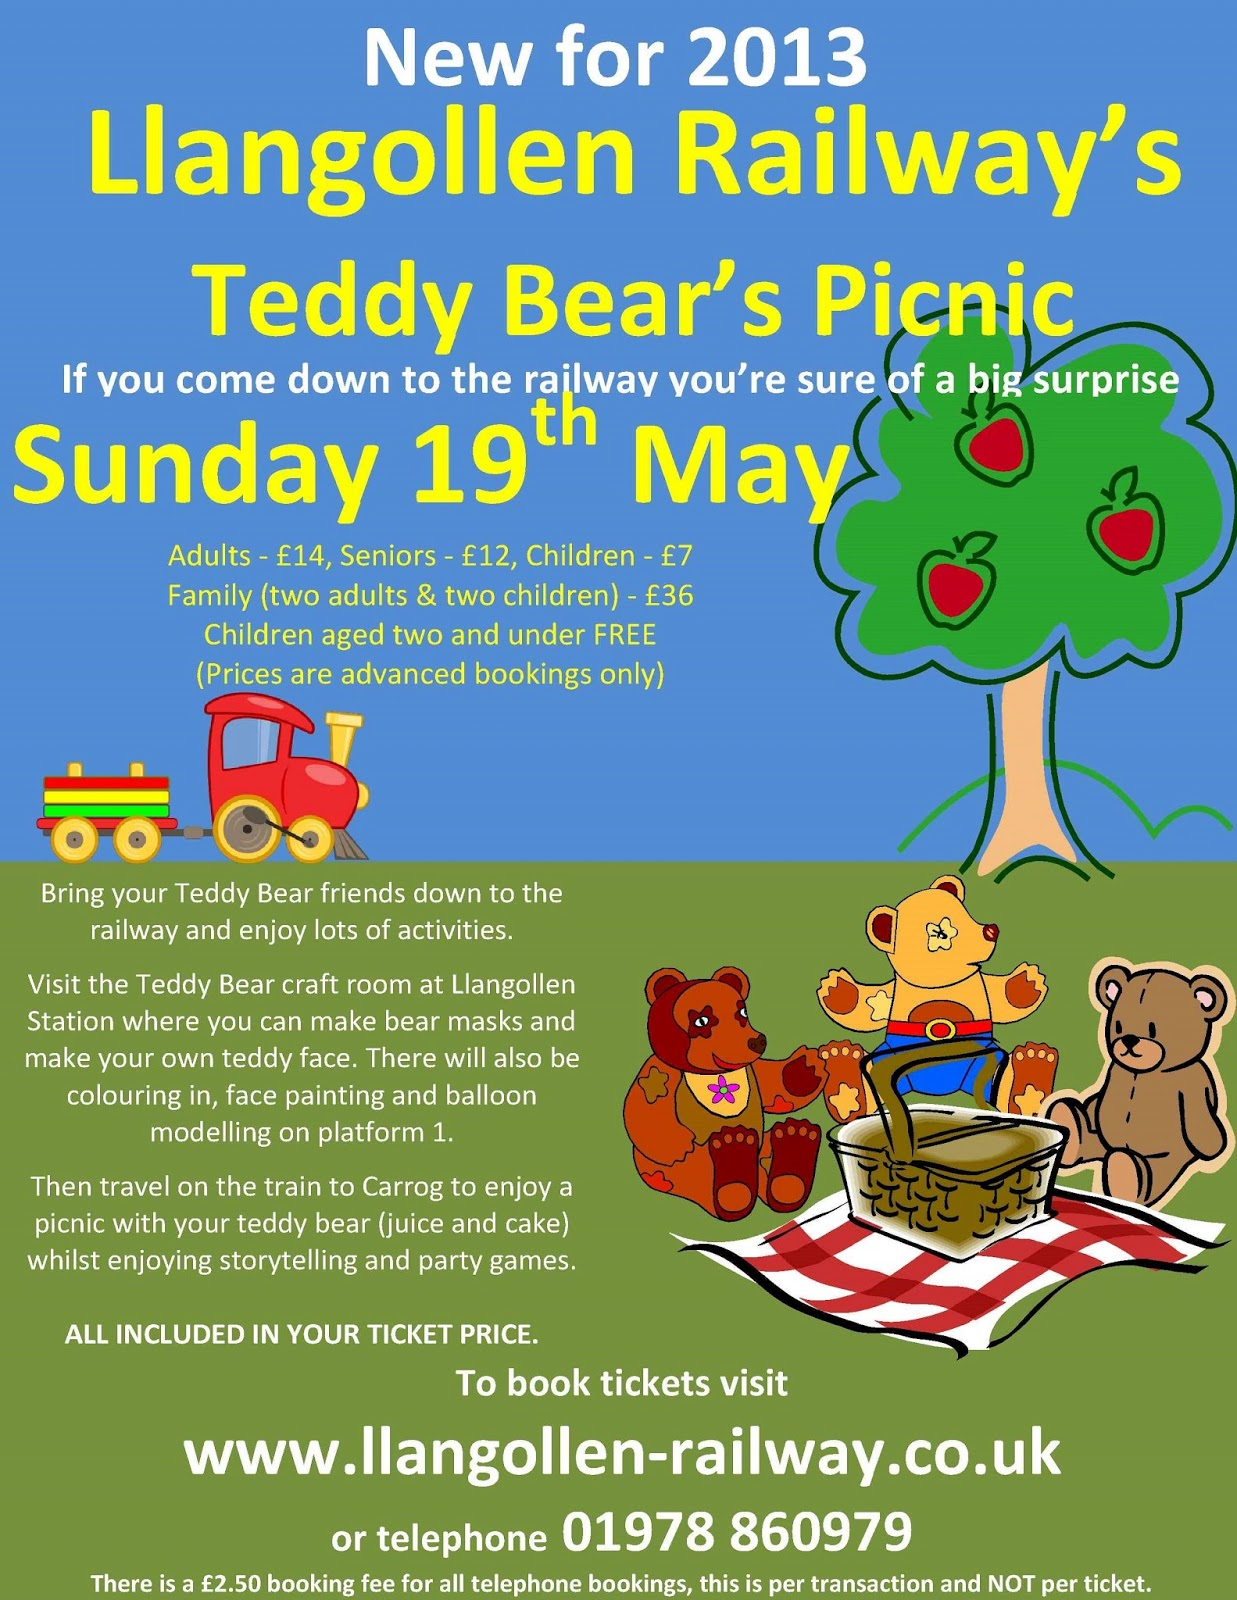 Railway Stages Its Teddy Bears Picnic